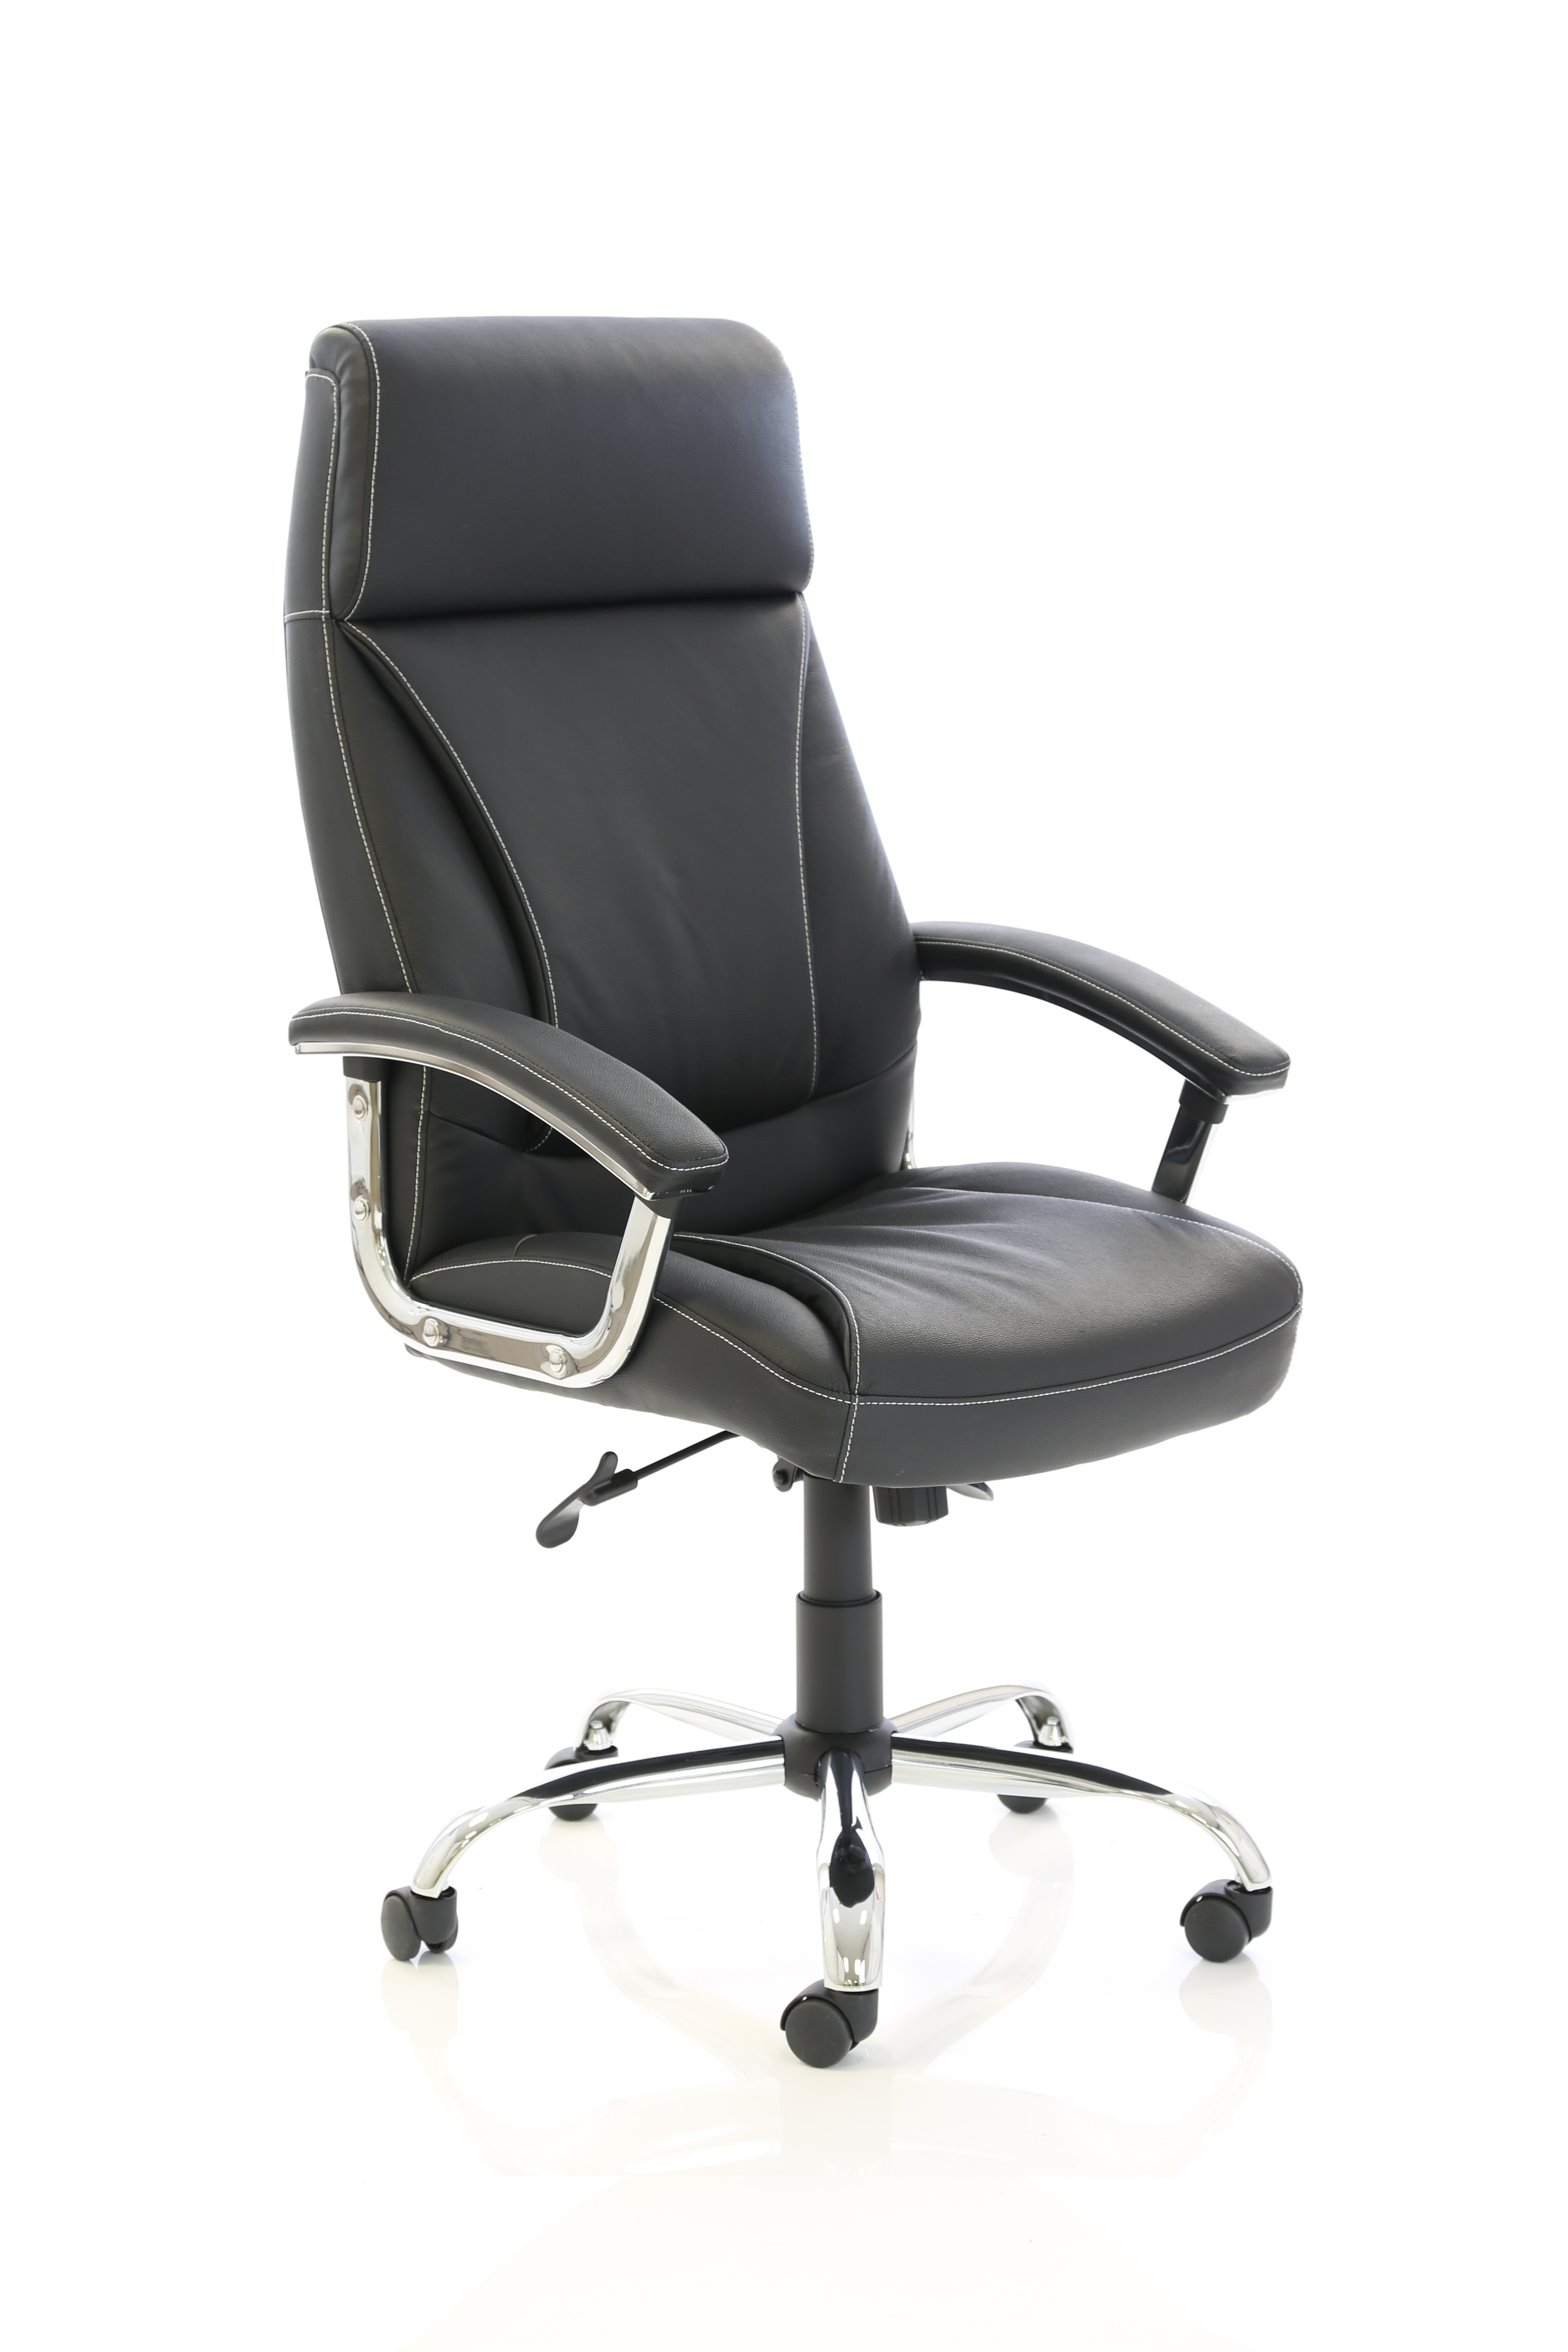 Executive Chairs Penza Executive Black Leather Chair EX000185